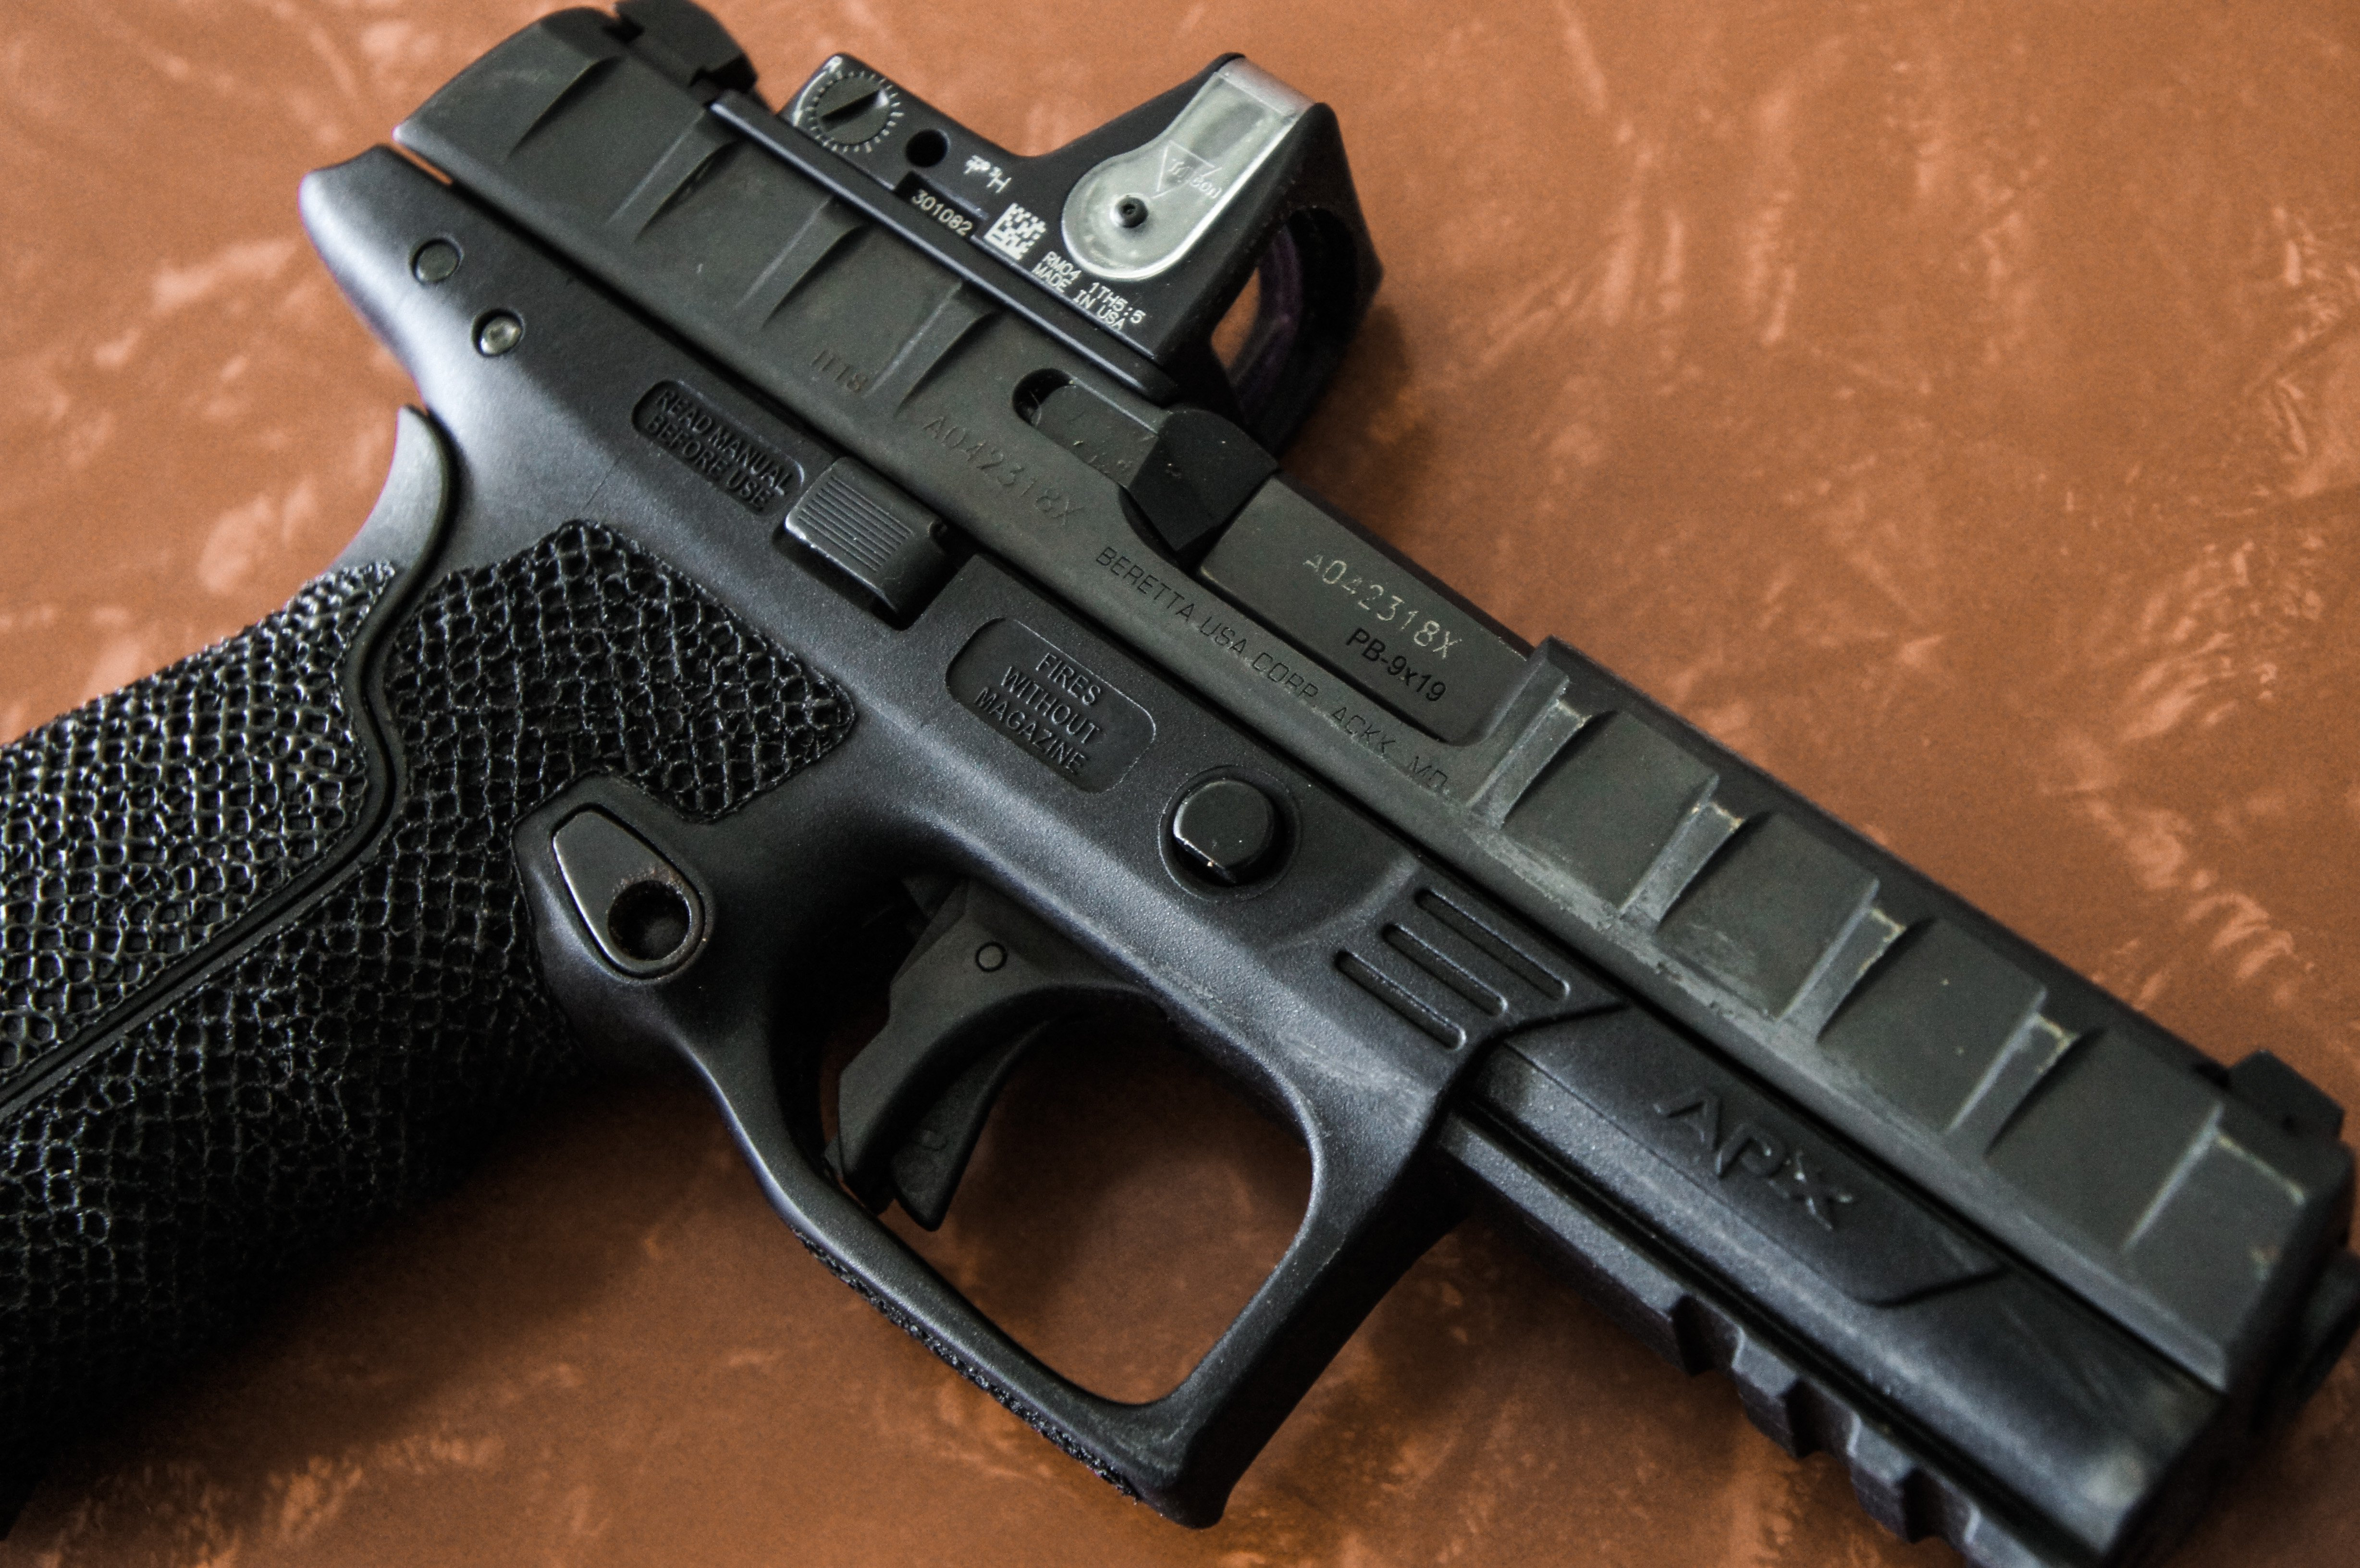 Check Out These Performance Upgrades for the Beretta APX Pistol